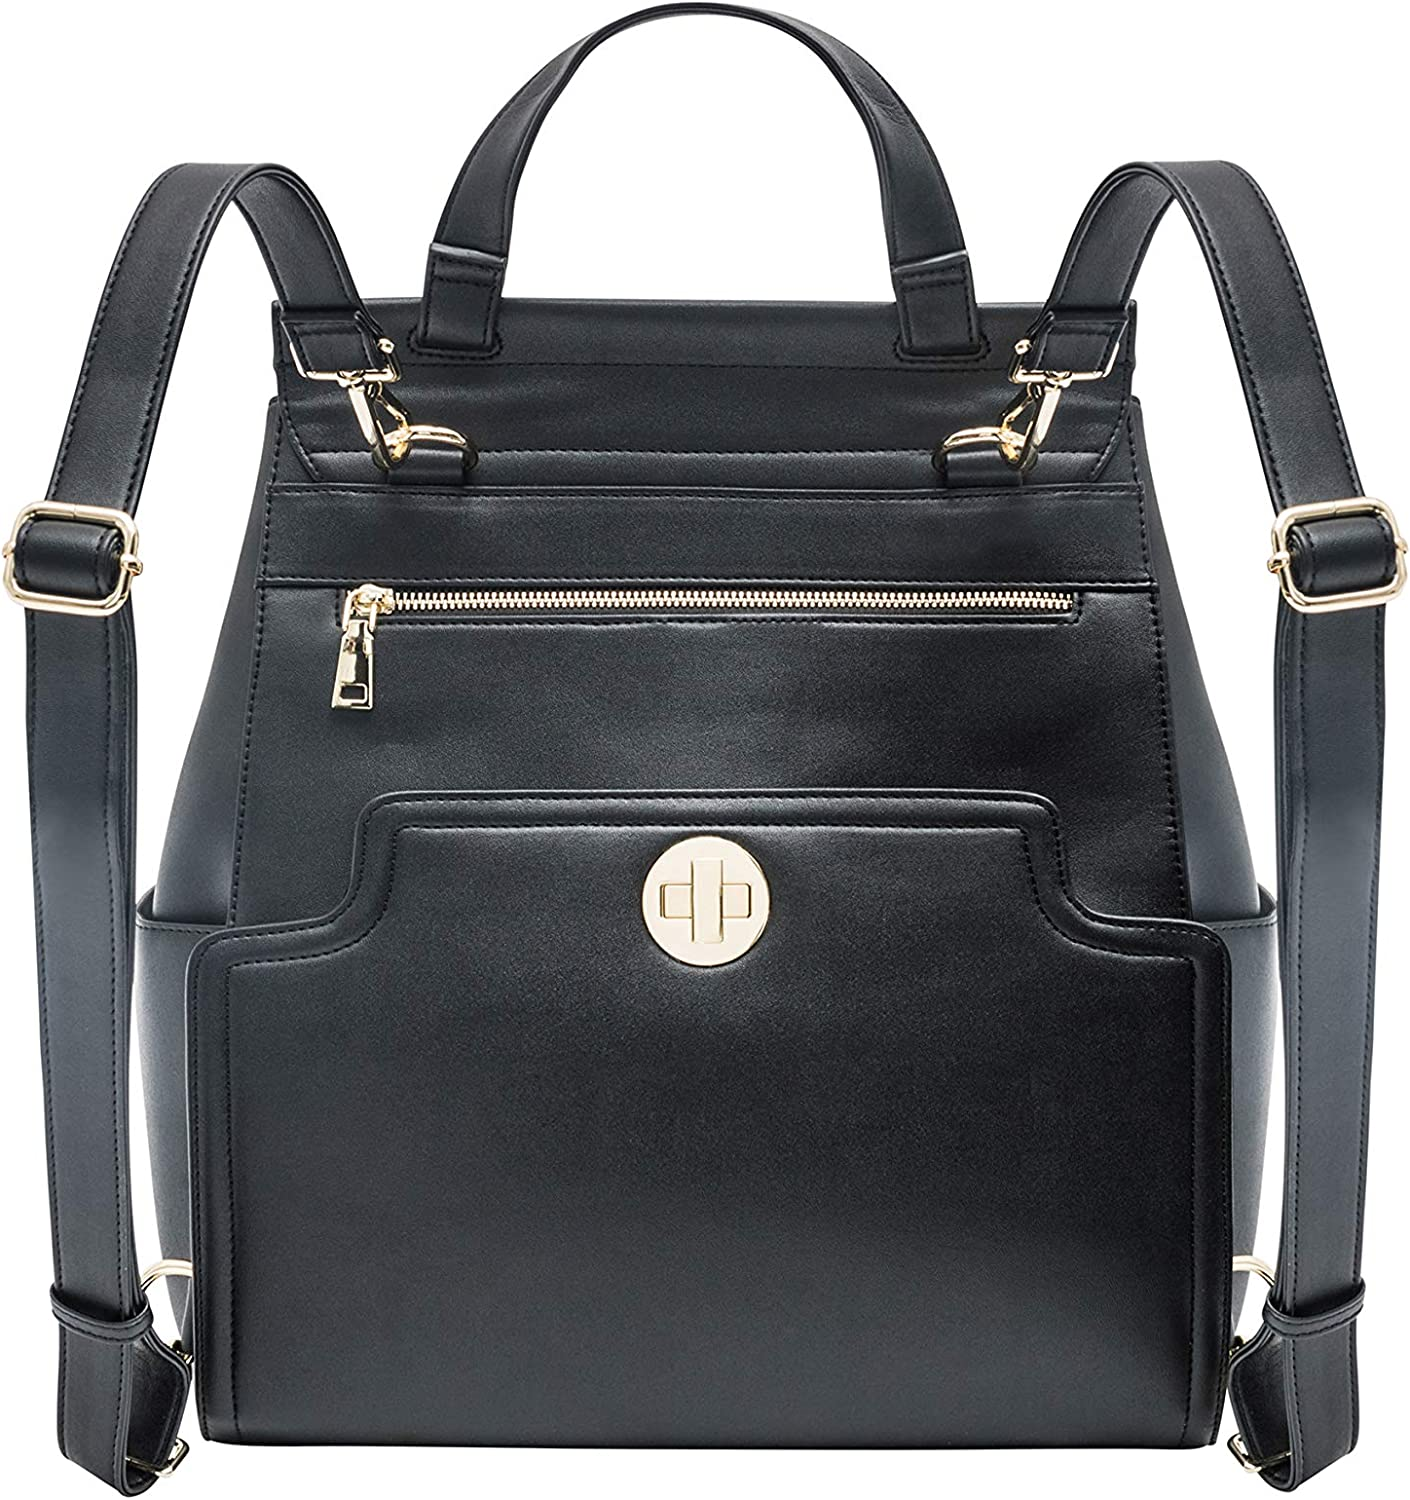 EVA Backpack with the worlds First ever changing pad integrated on the exterior for easy access Get yours now! Chic versatile BRELOKQ Diaper Bag Backpack made of Premium Vegan Leather practical